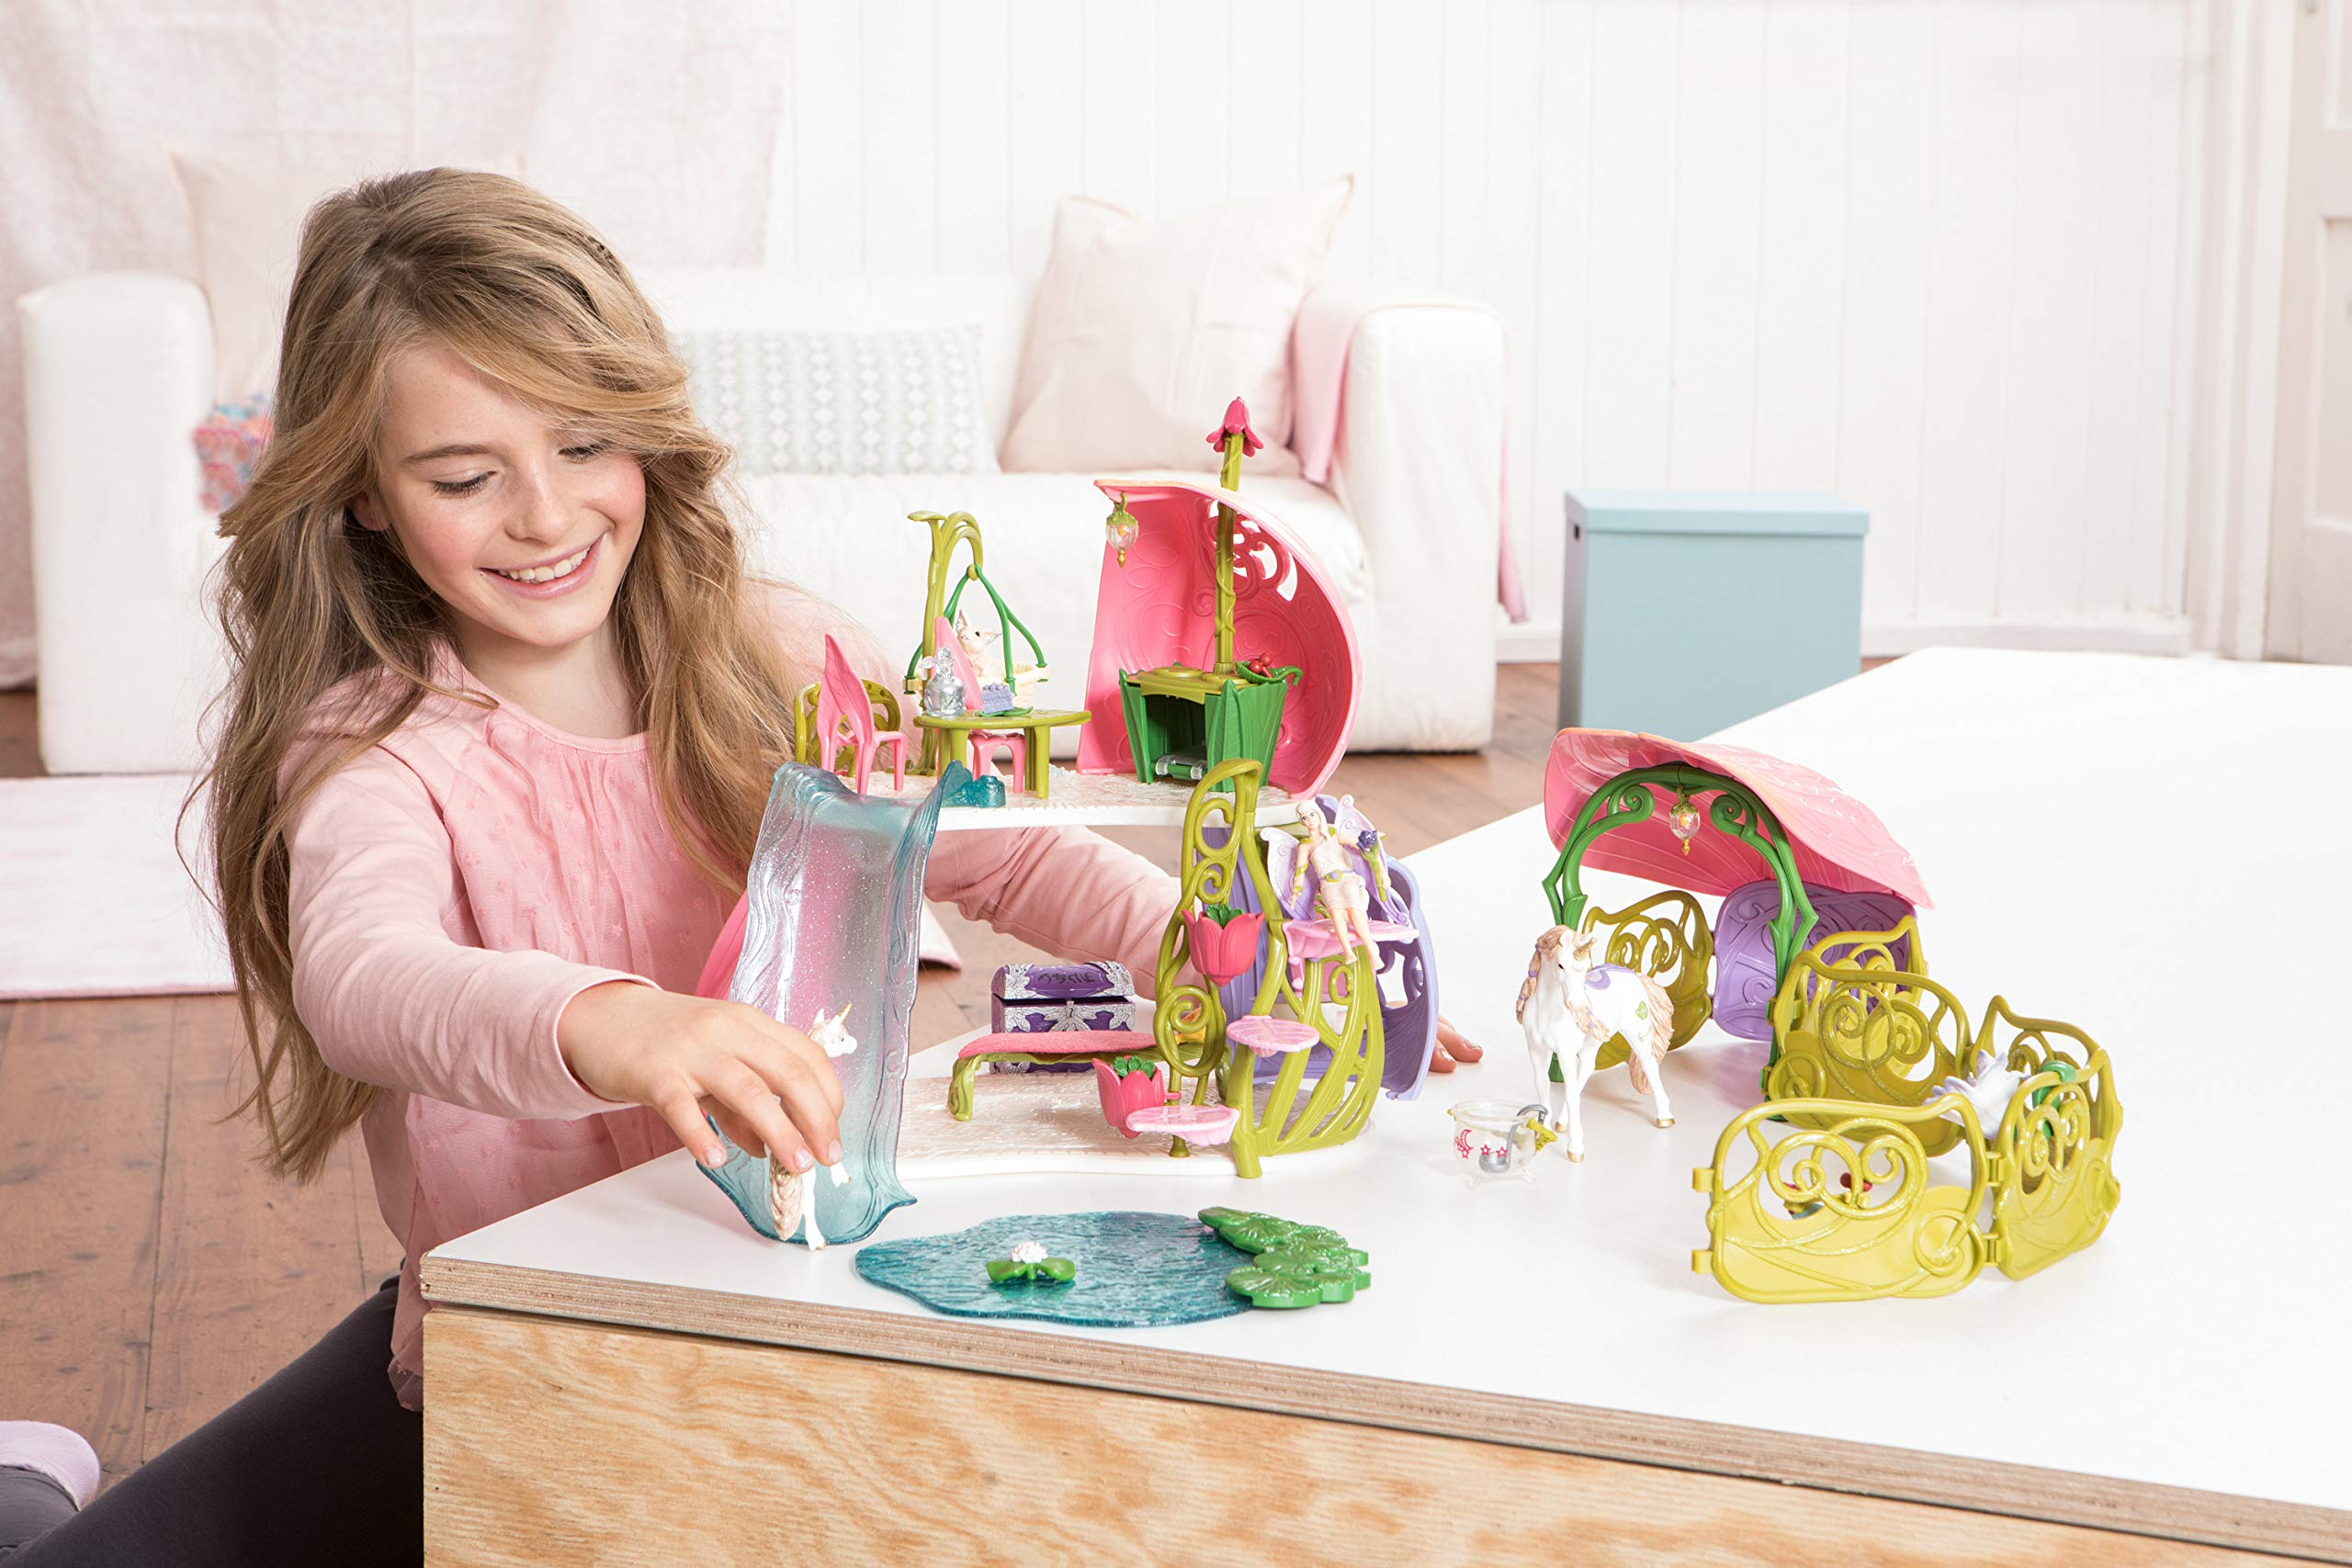 Schleich Glittering Flower House with Unicorns, Lake and Stable, Multicolor by Schleich (Image #3)